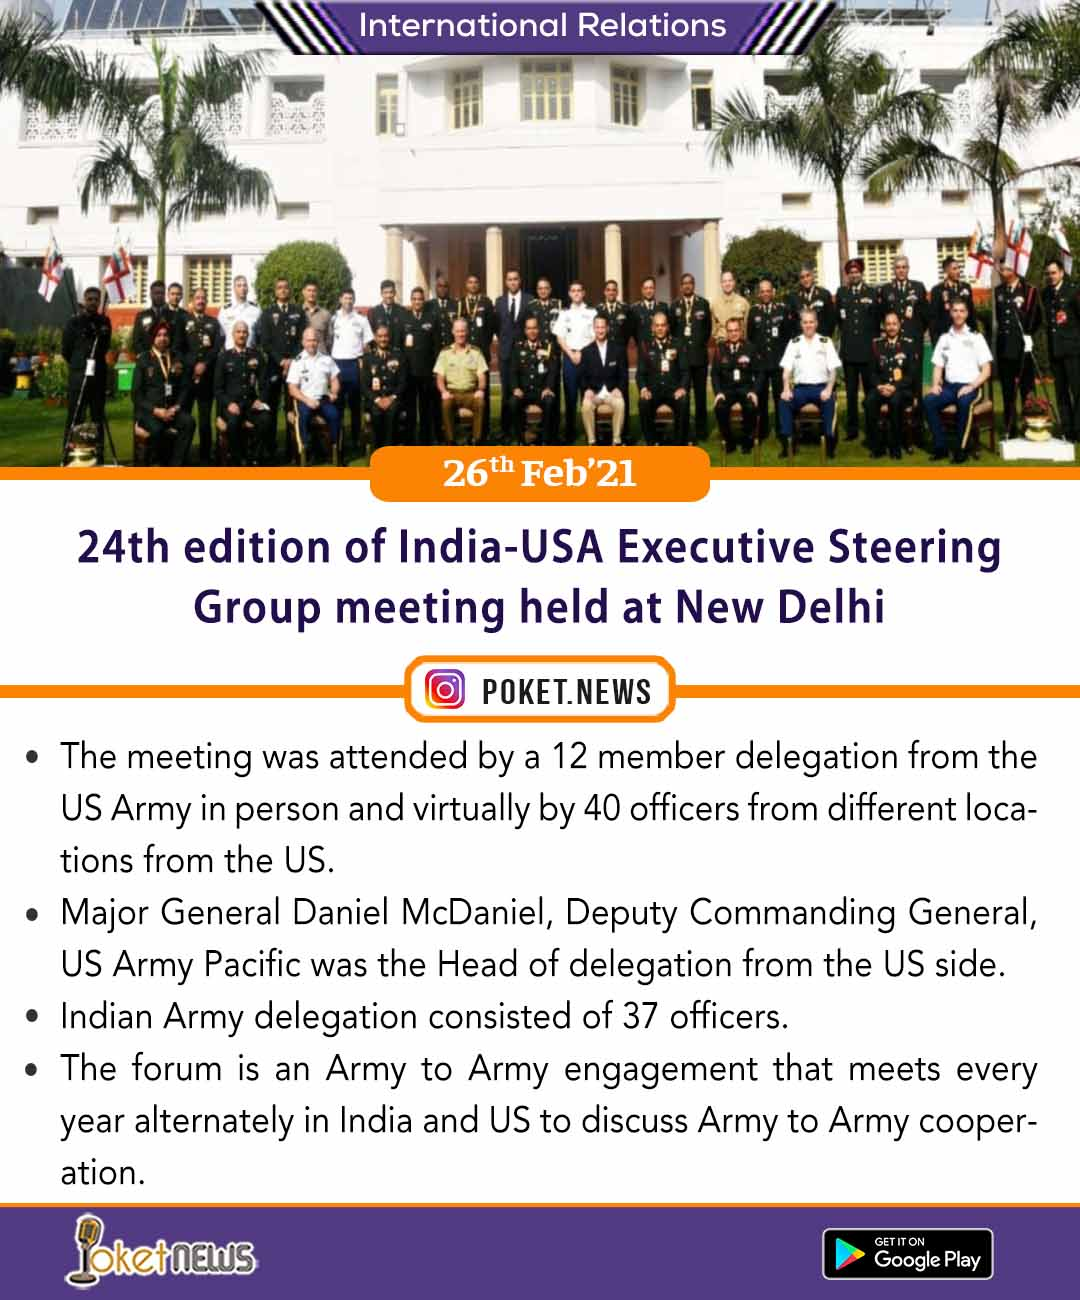 24th edition of India-USA Executive Steering Group meeting held at New Delhi